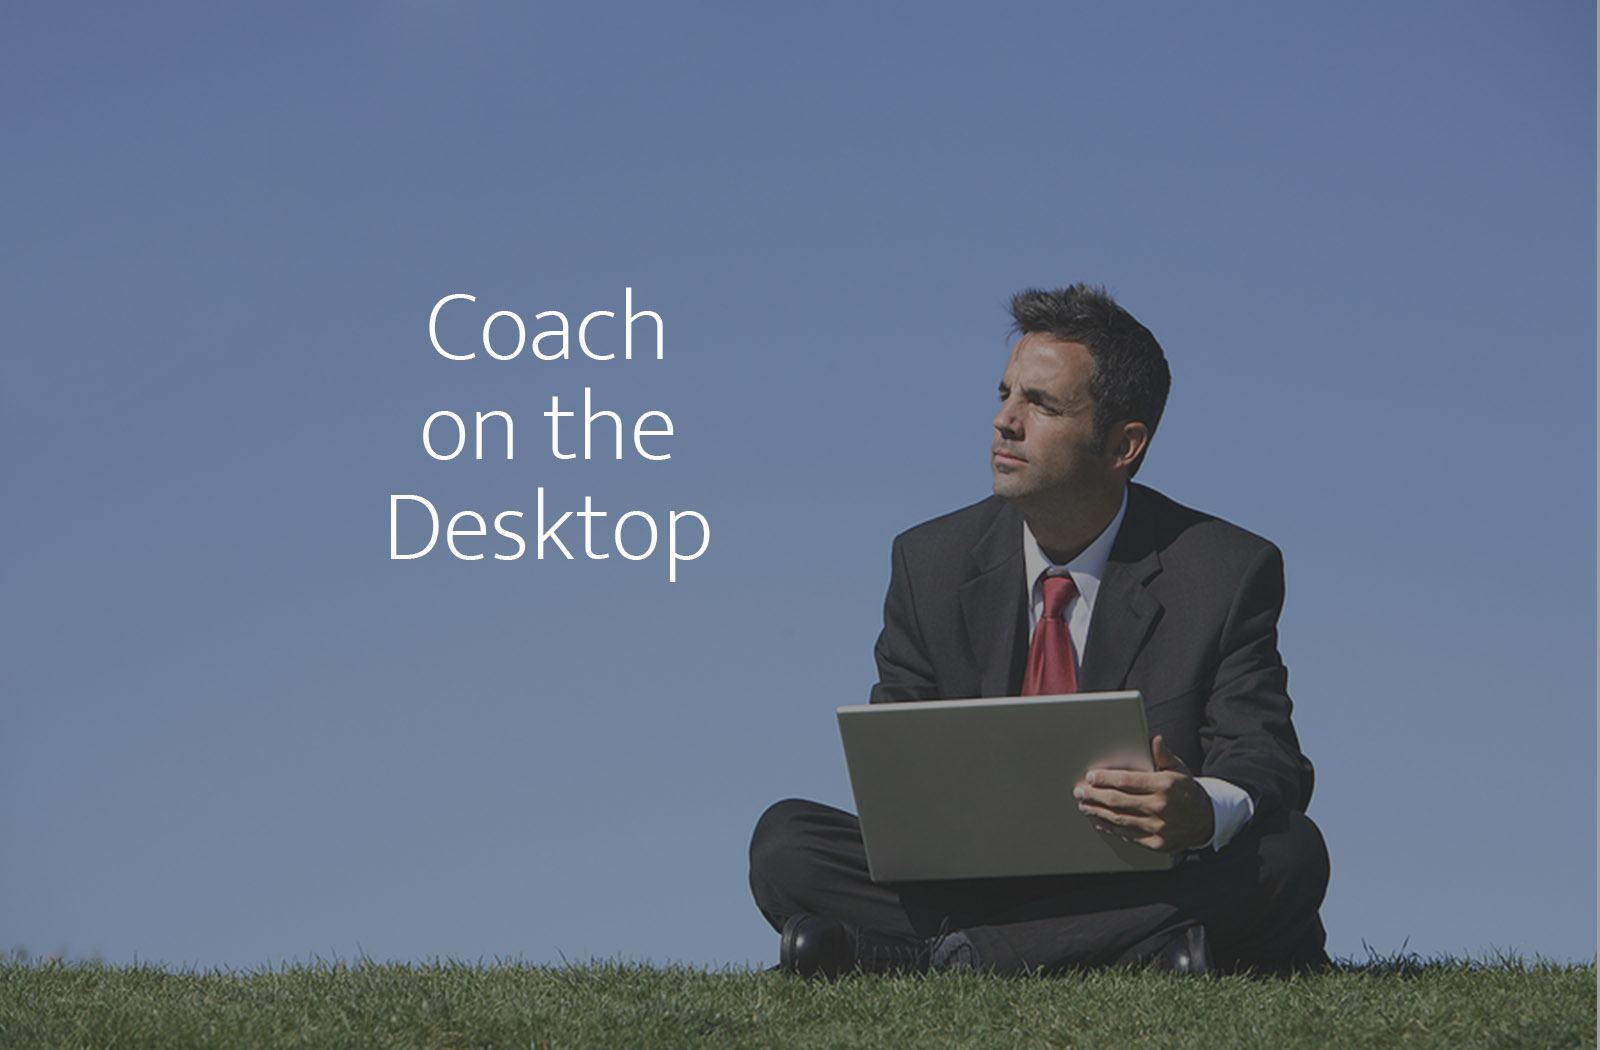 The Coach on the Desktop – online leadership development